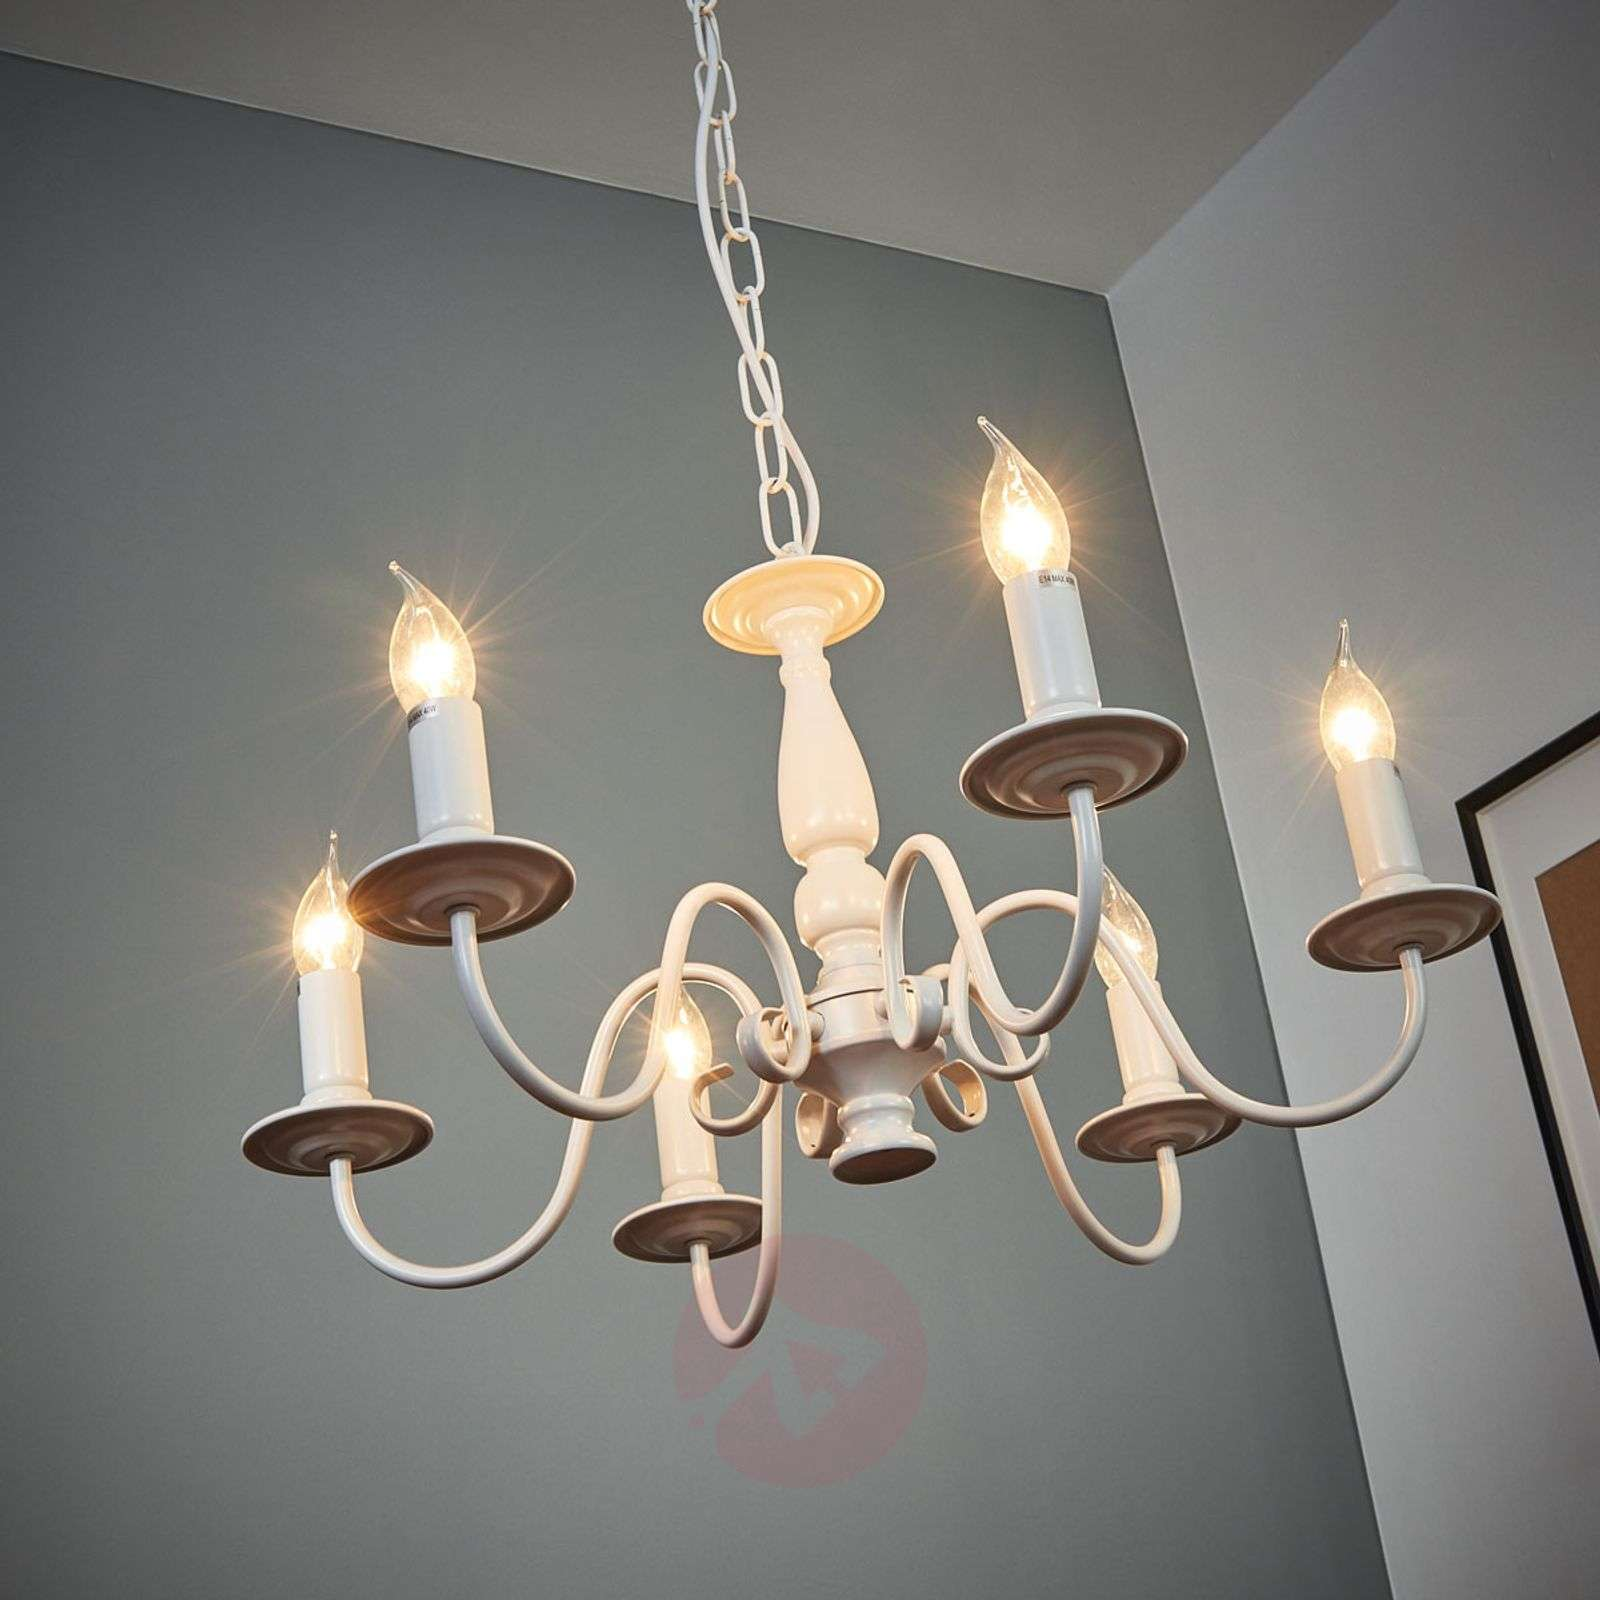 White chandelier MAYRA in country house style-1032220-01